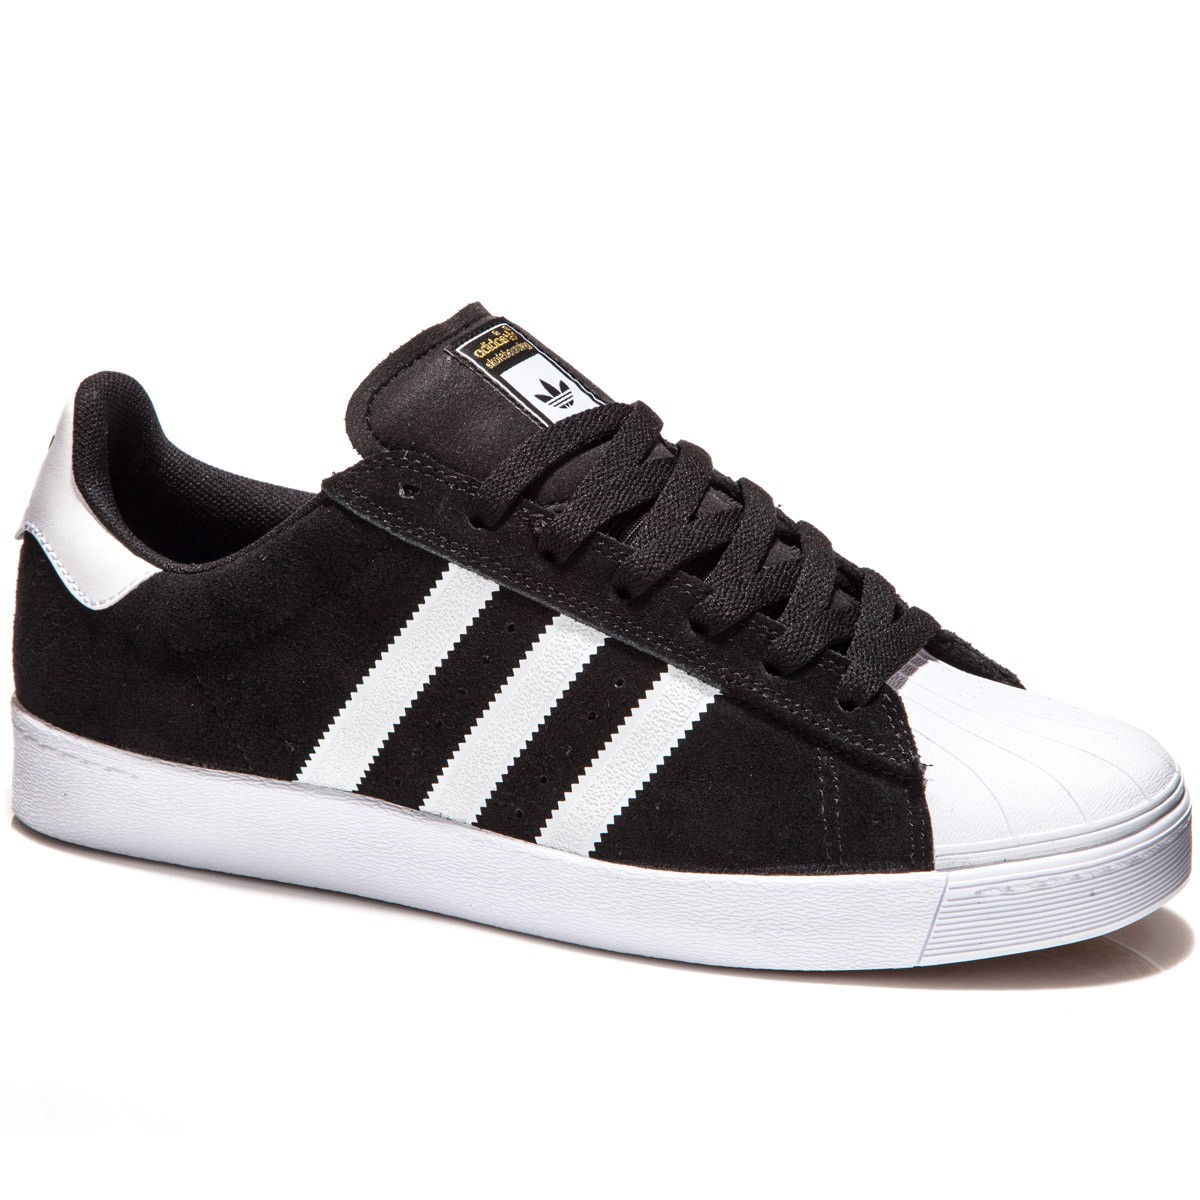 Cheap Adidas black, adv, superstar Cheap Adidas Australia